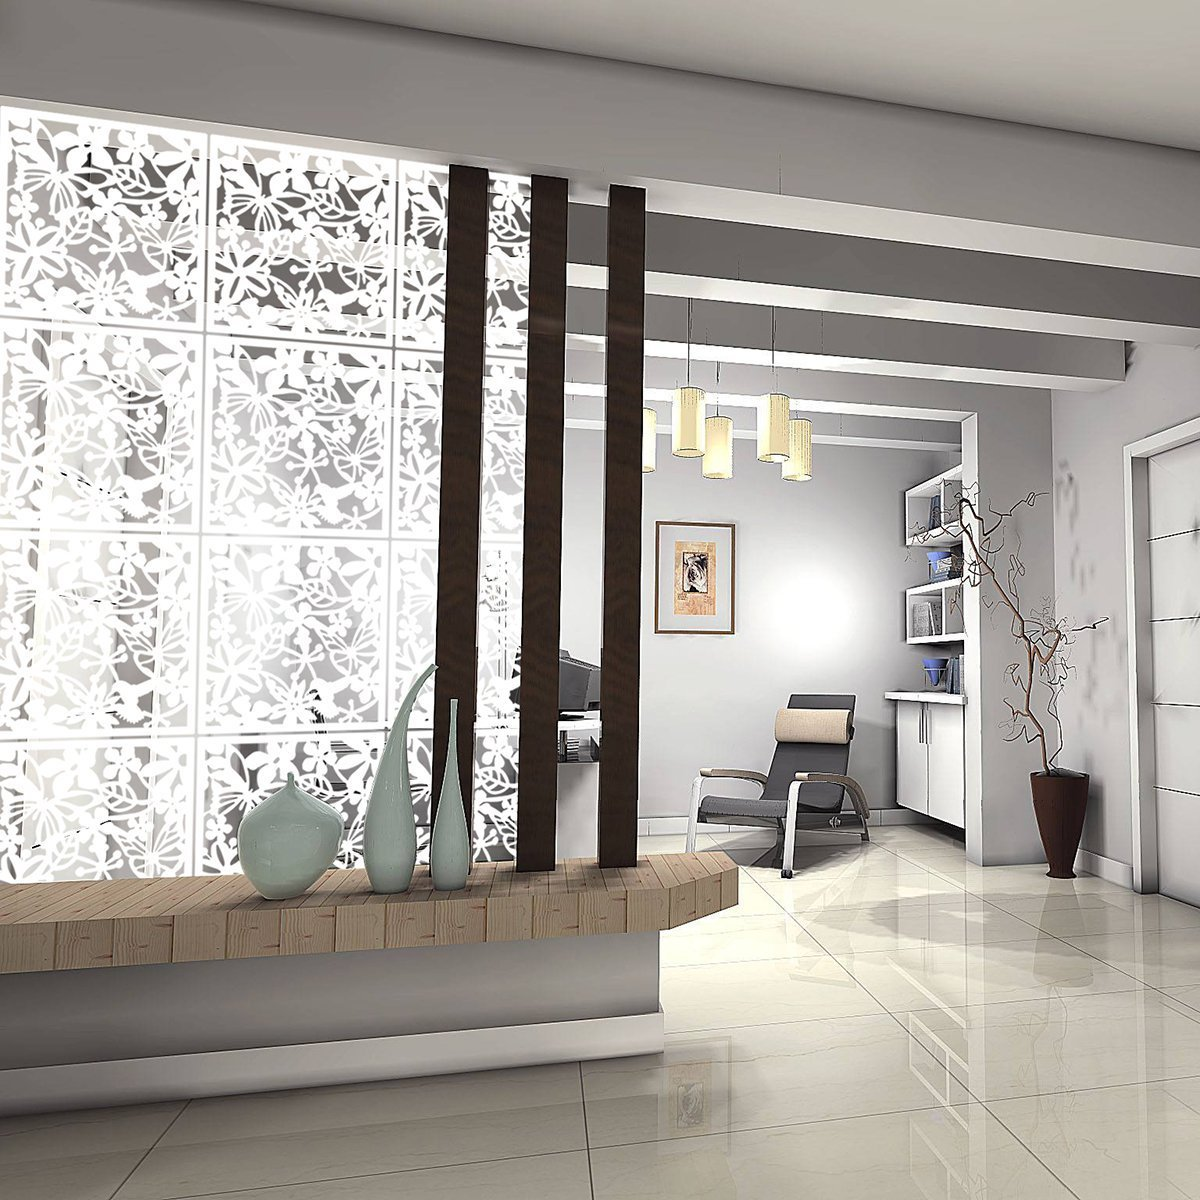 Kernorv DIY Hanging Room Divider Made Environmentally PVC, 12 PCS Partitions Panels Screen Decorating Bedding, Dining, Study Sitting-room, Hotel, Bar Office. (12, White)